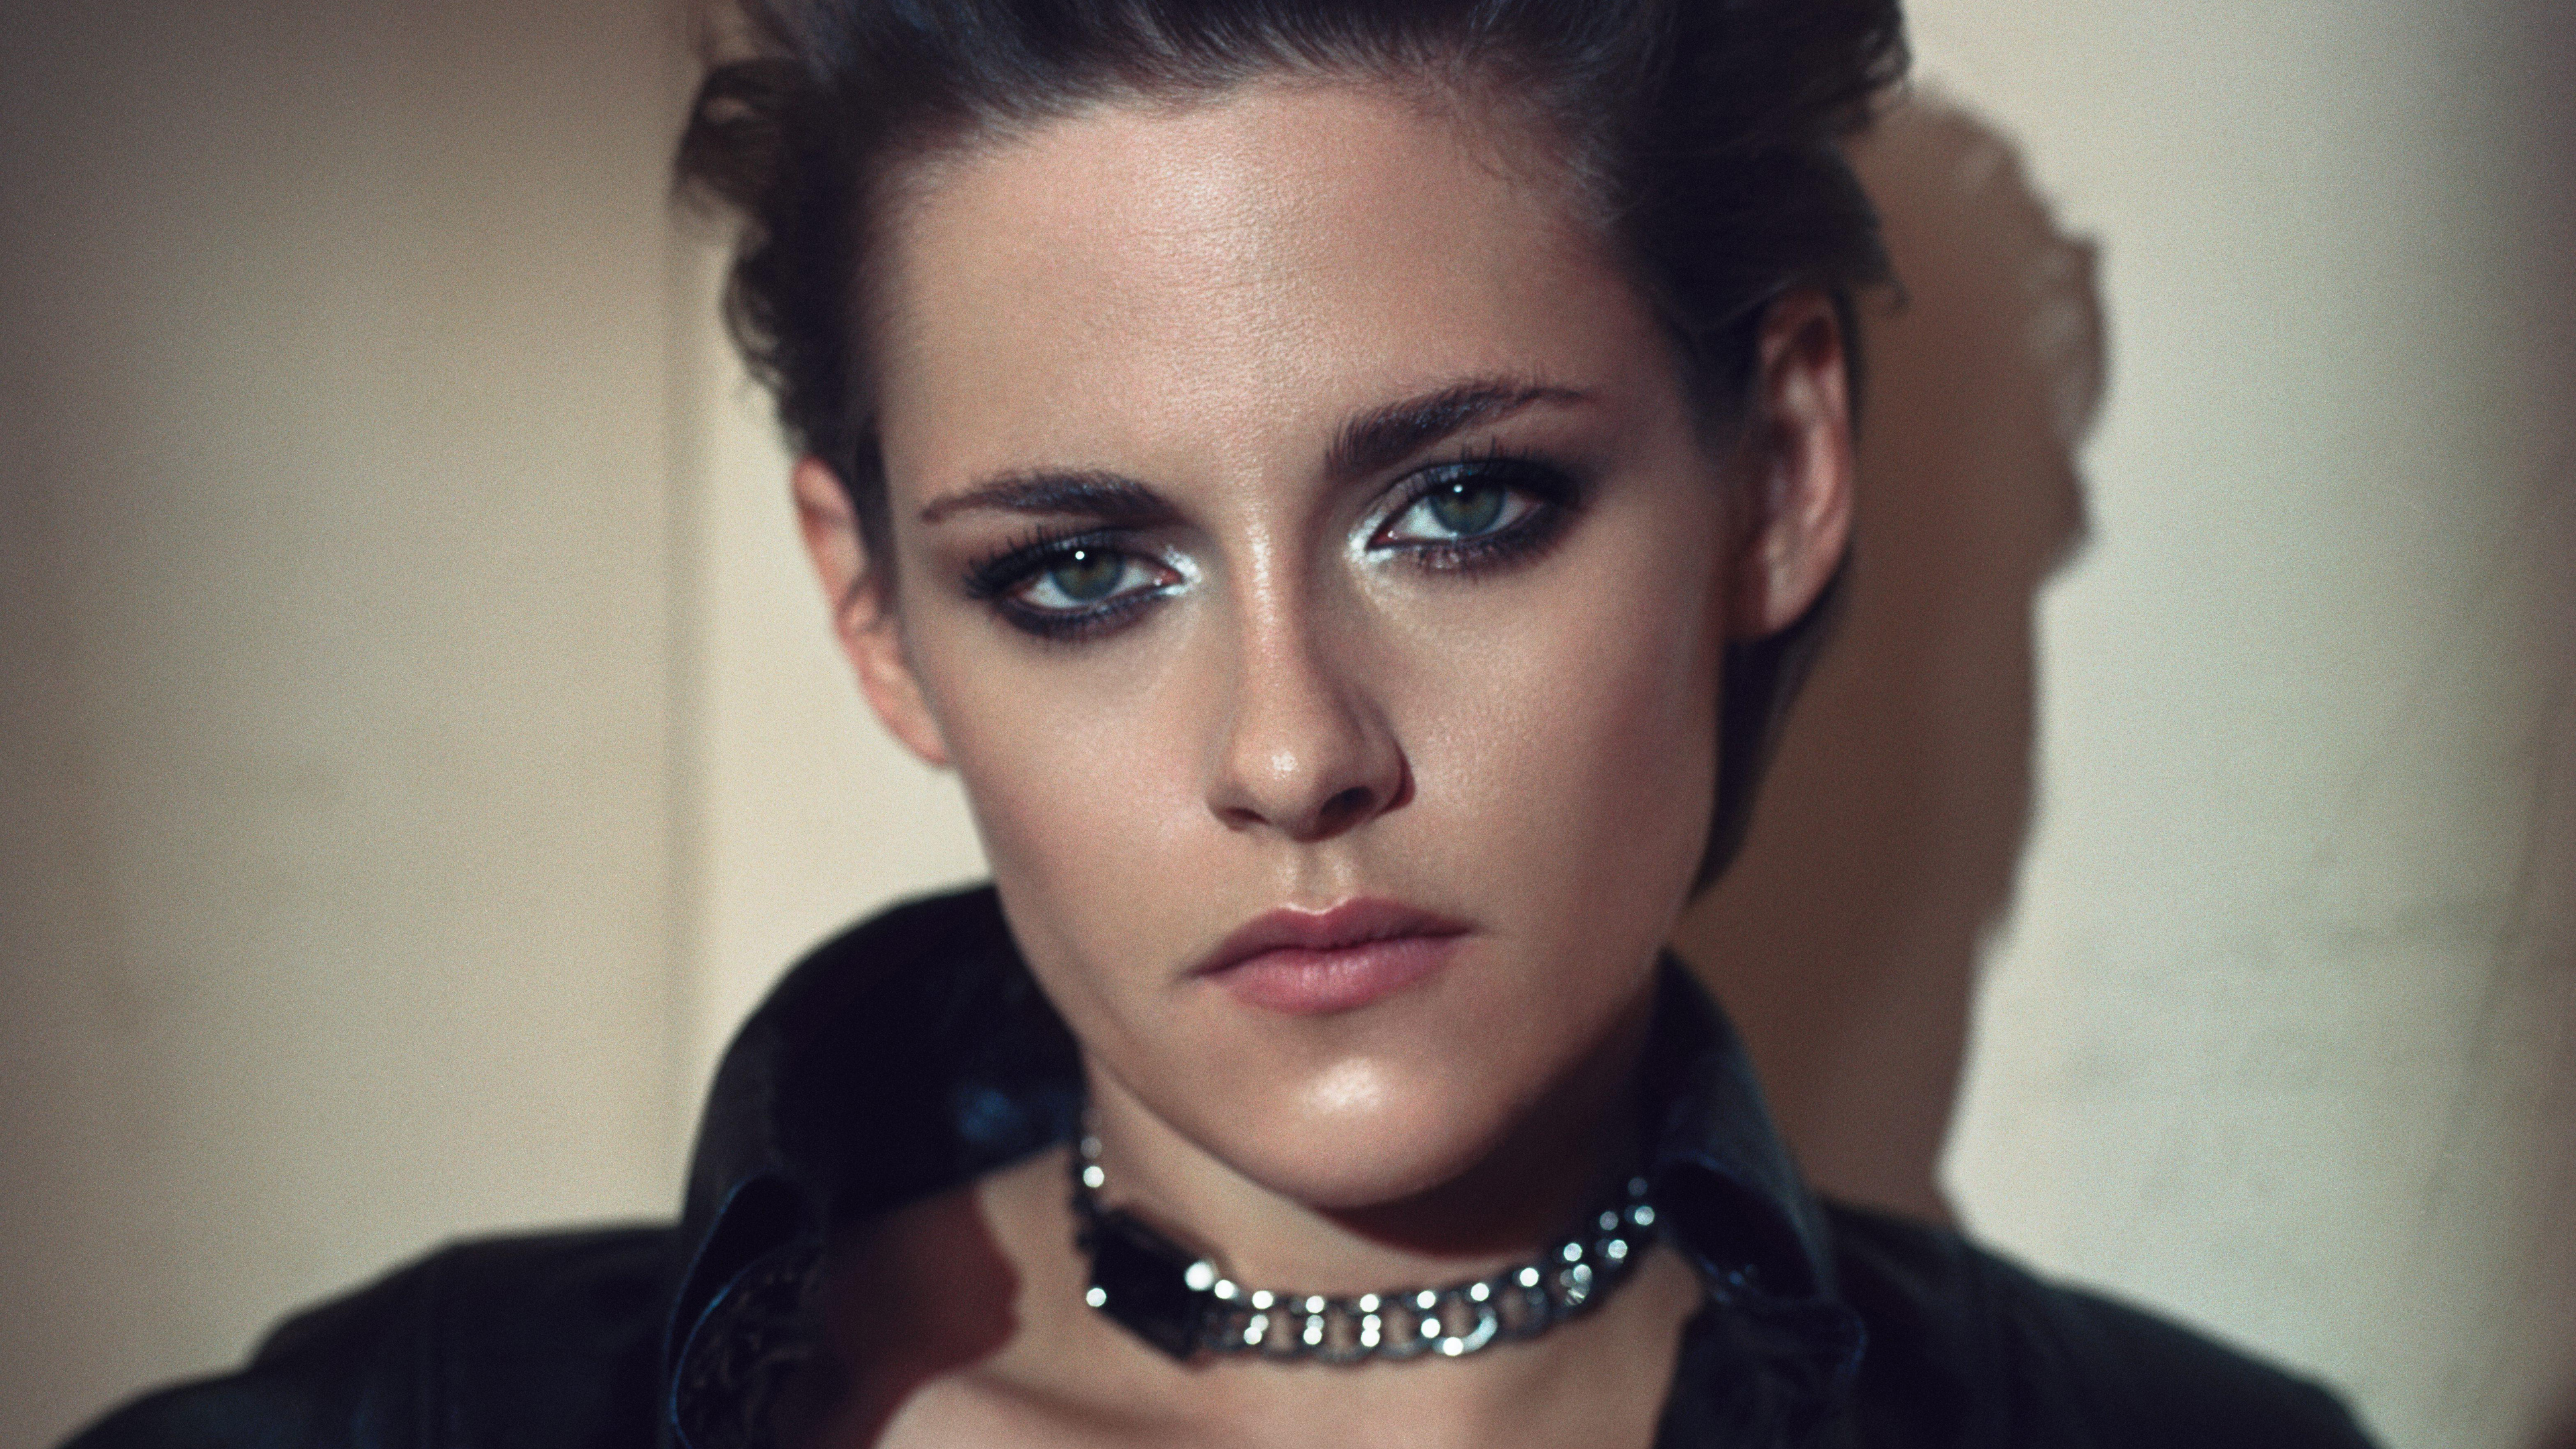 4k kristen stewart 2014k 1542236183 - 4k Kristen Stewart 4k - kristen stewart wallpapers, hd-wallpapers, girls wallpapers, celebrities wallpapers, 4k-wallpapers